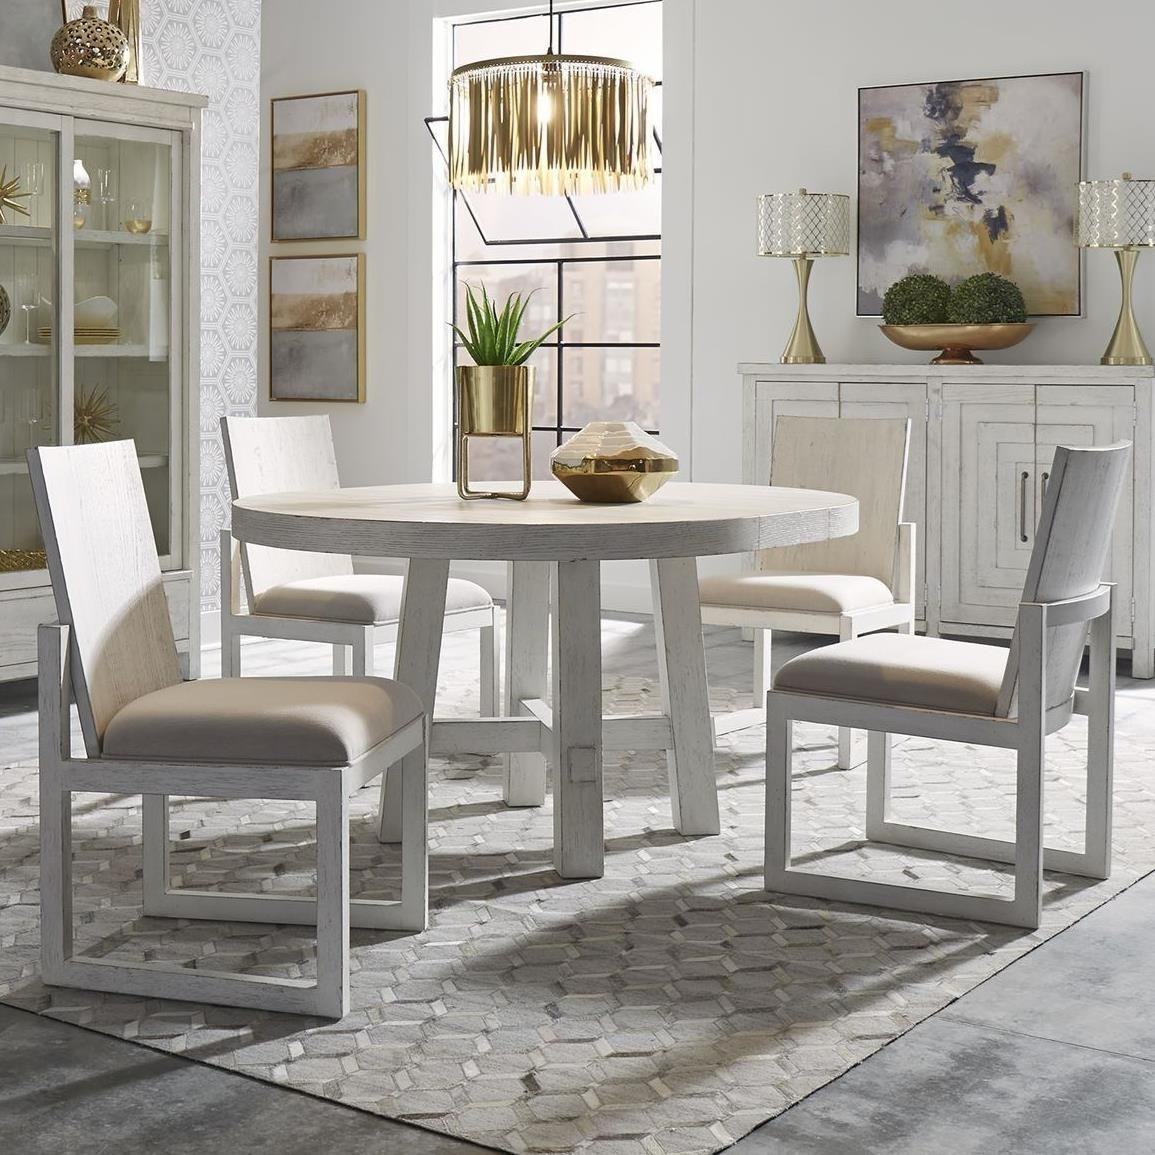 Modern Farmhouse 5-Piece Round Table and Chair Set by Liberty Furniture at Beck's Furniture